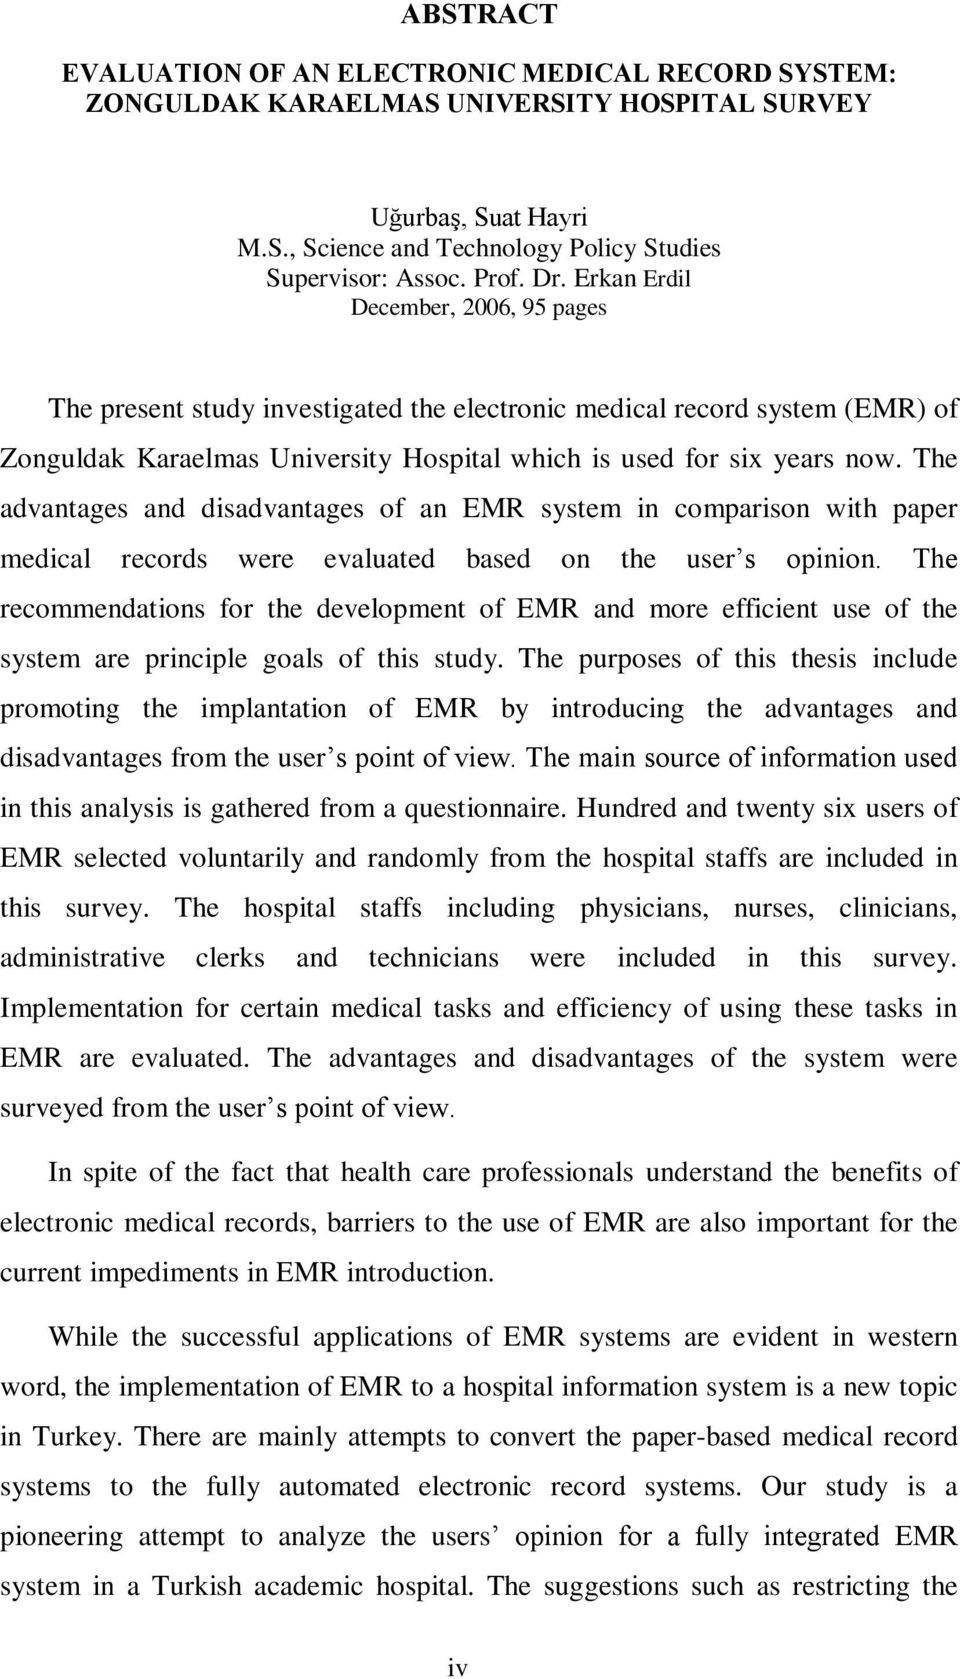 The advantages and disadvantages of an EMR system in comparison with paper medical records were evaluated based on the user s opinion.